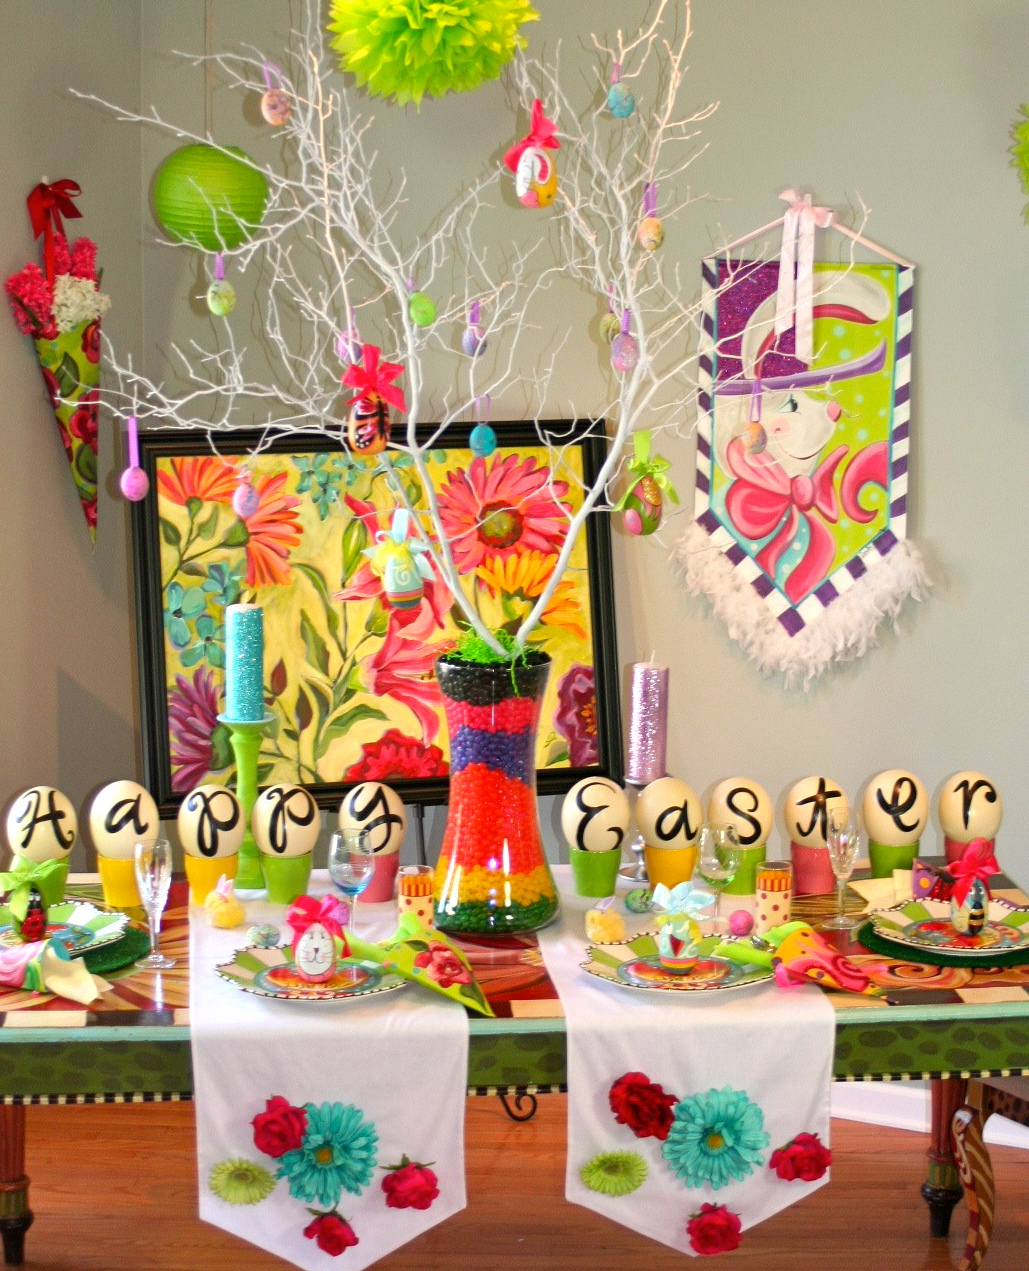 Lisa Frost and Show Me Decorating DIY for Easter!  Show Me Decorating